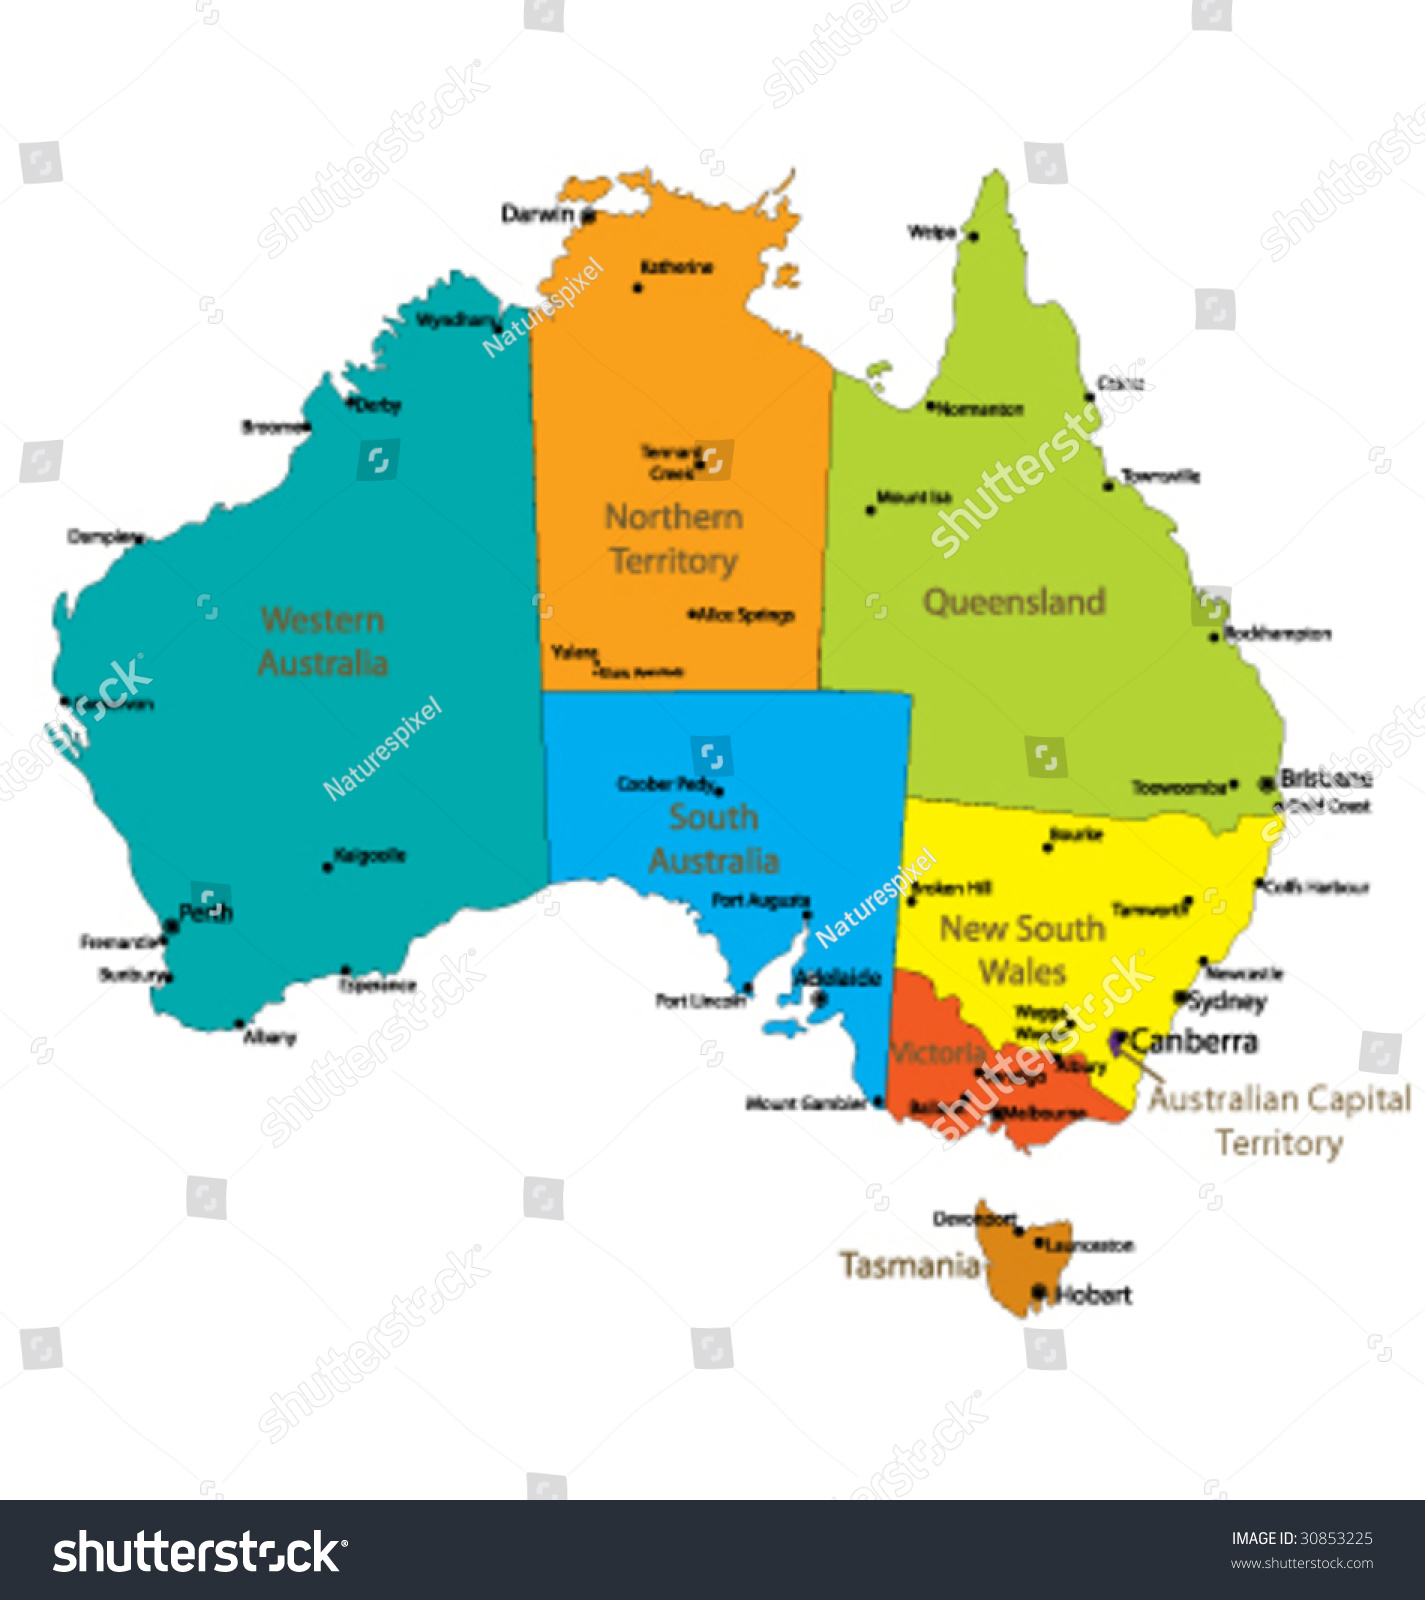 Australia Map Cities And States – Australia Map with States and Capital Cities